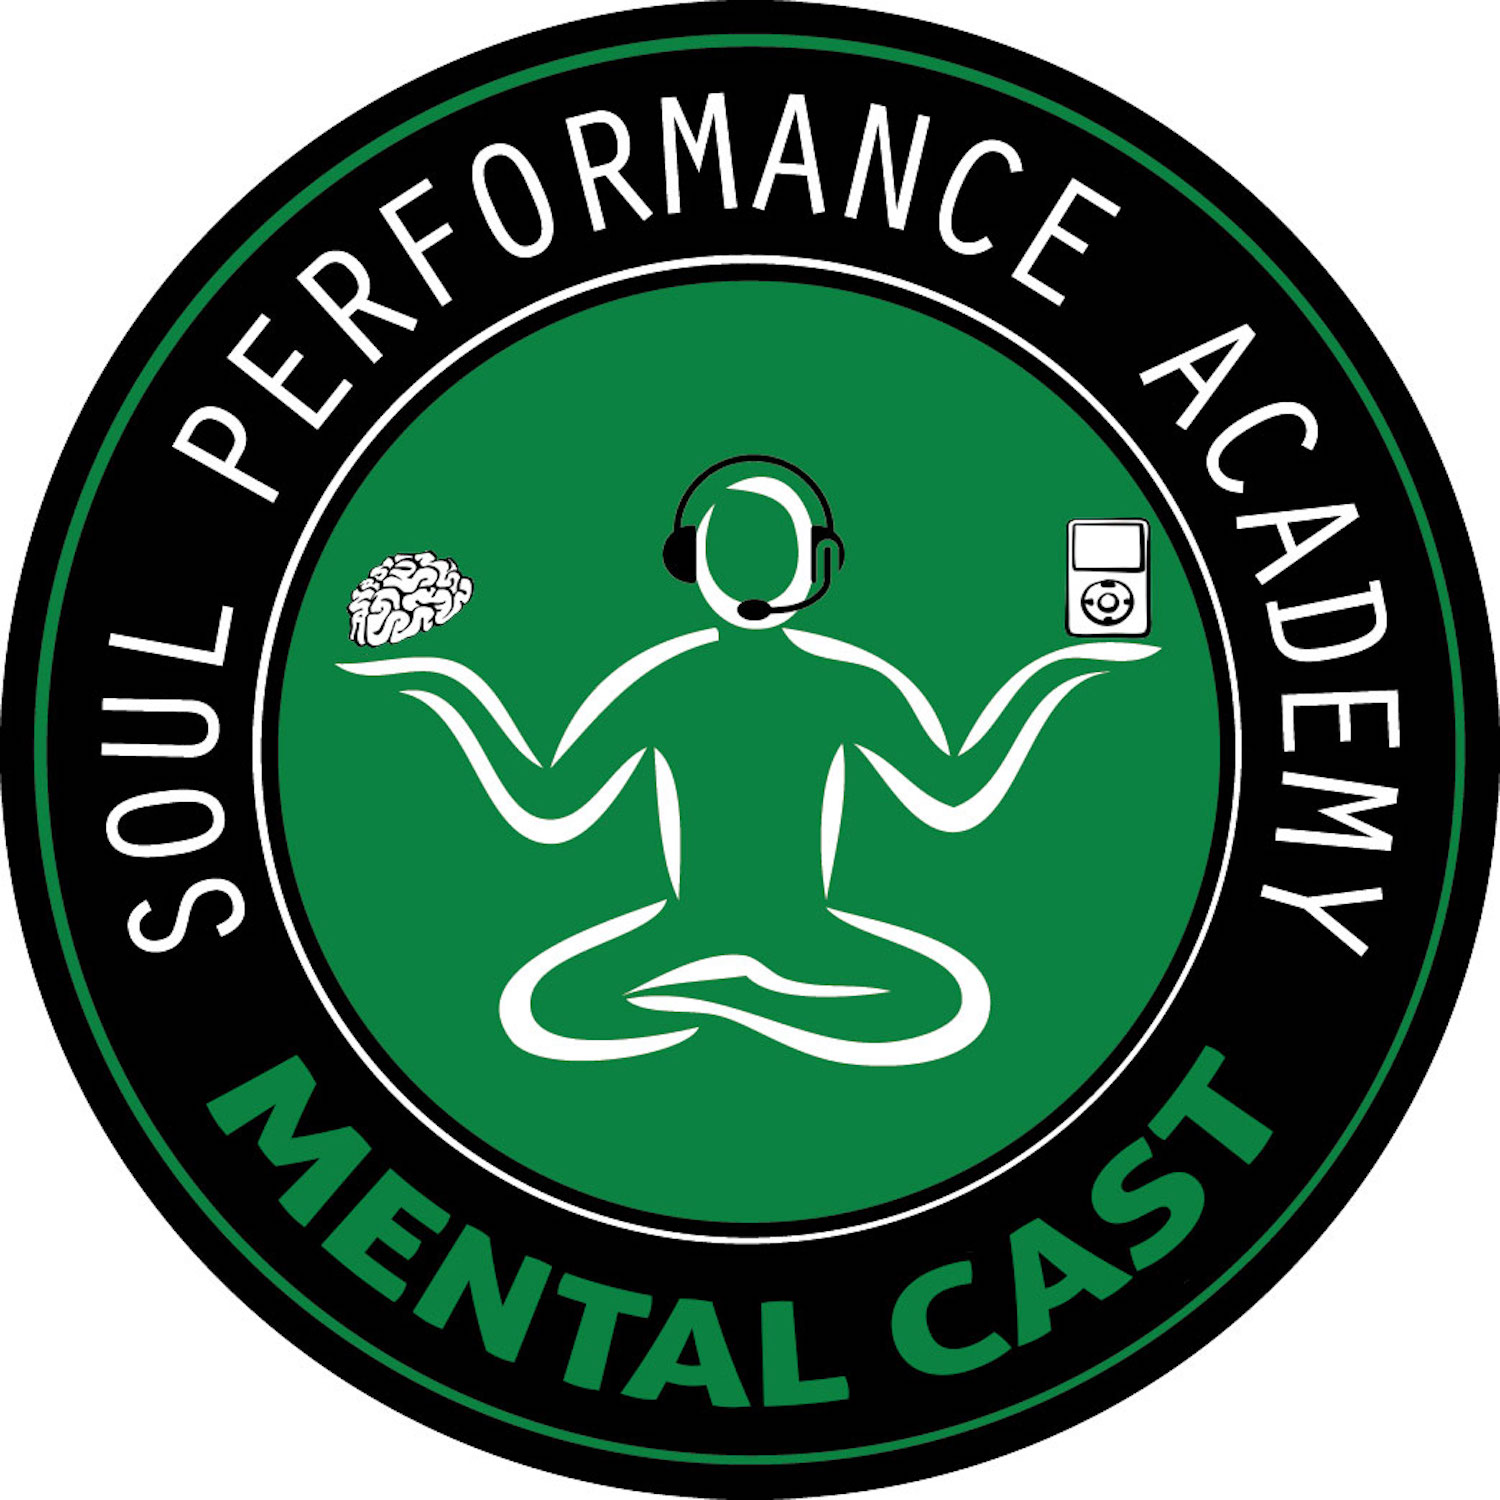 The Mental Cast